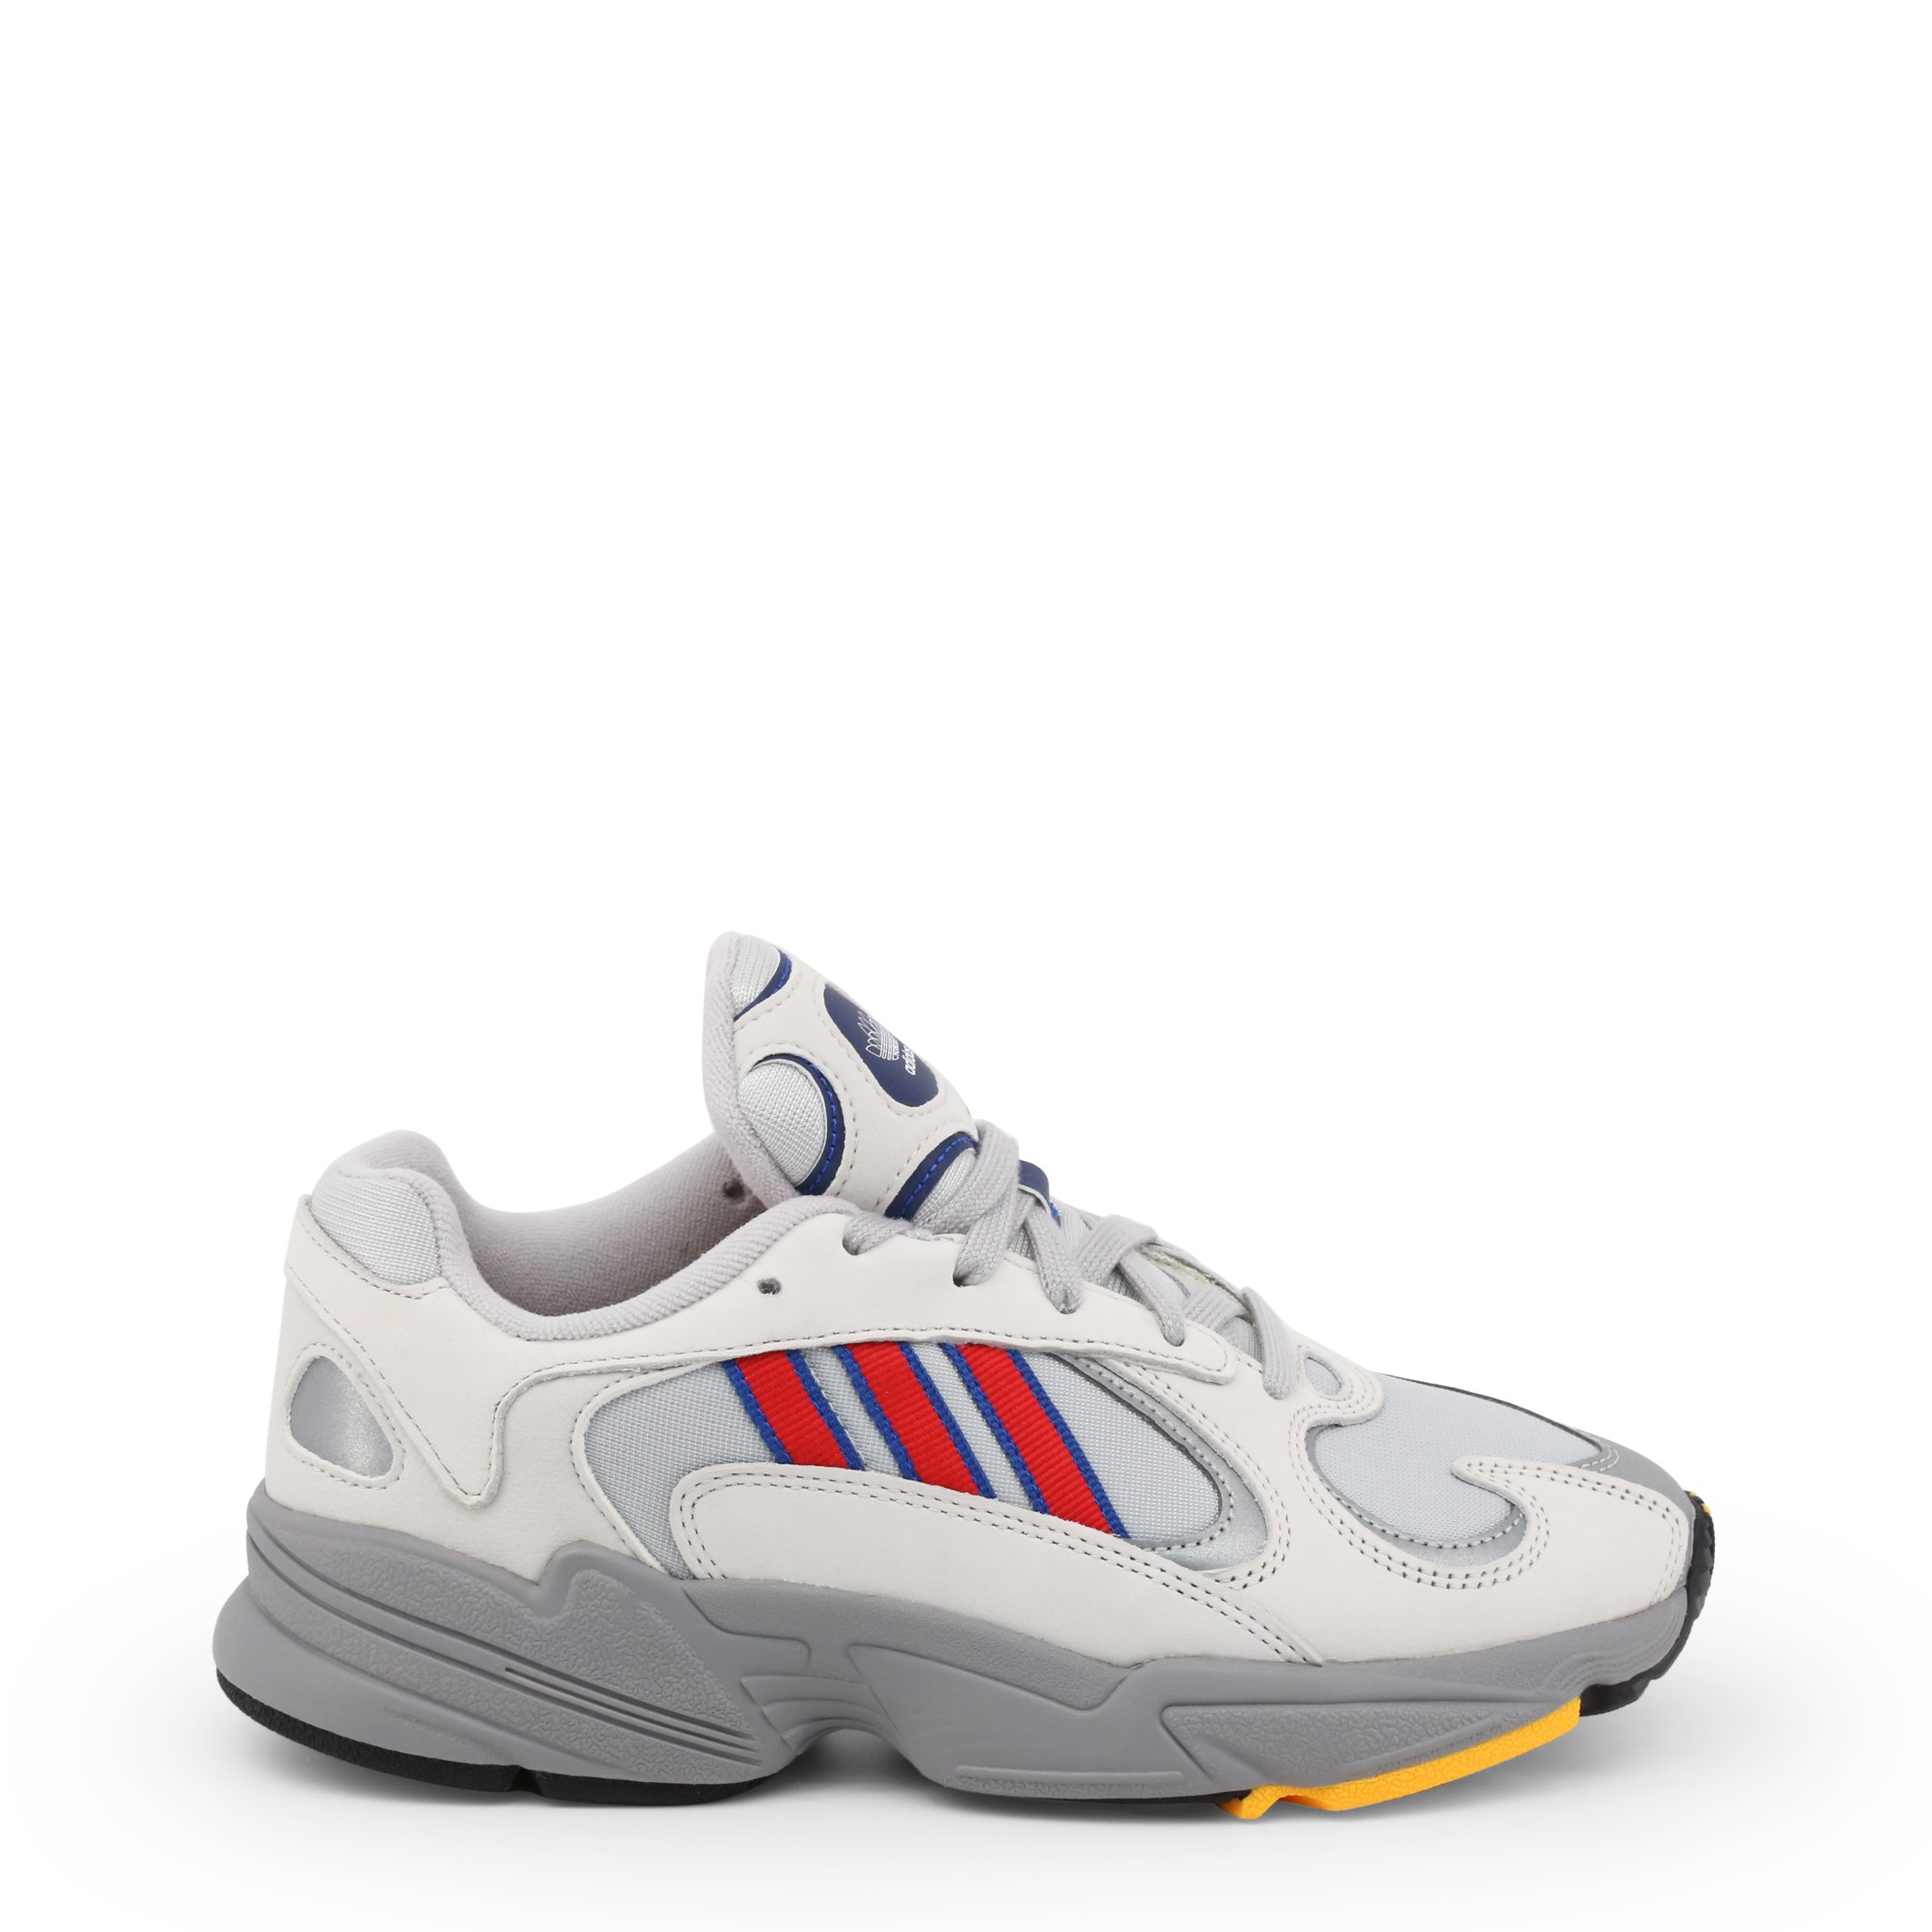 Adidas Unisex Trainers Various Colours BD7654 - grey 10 UK